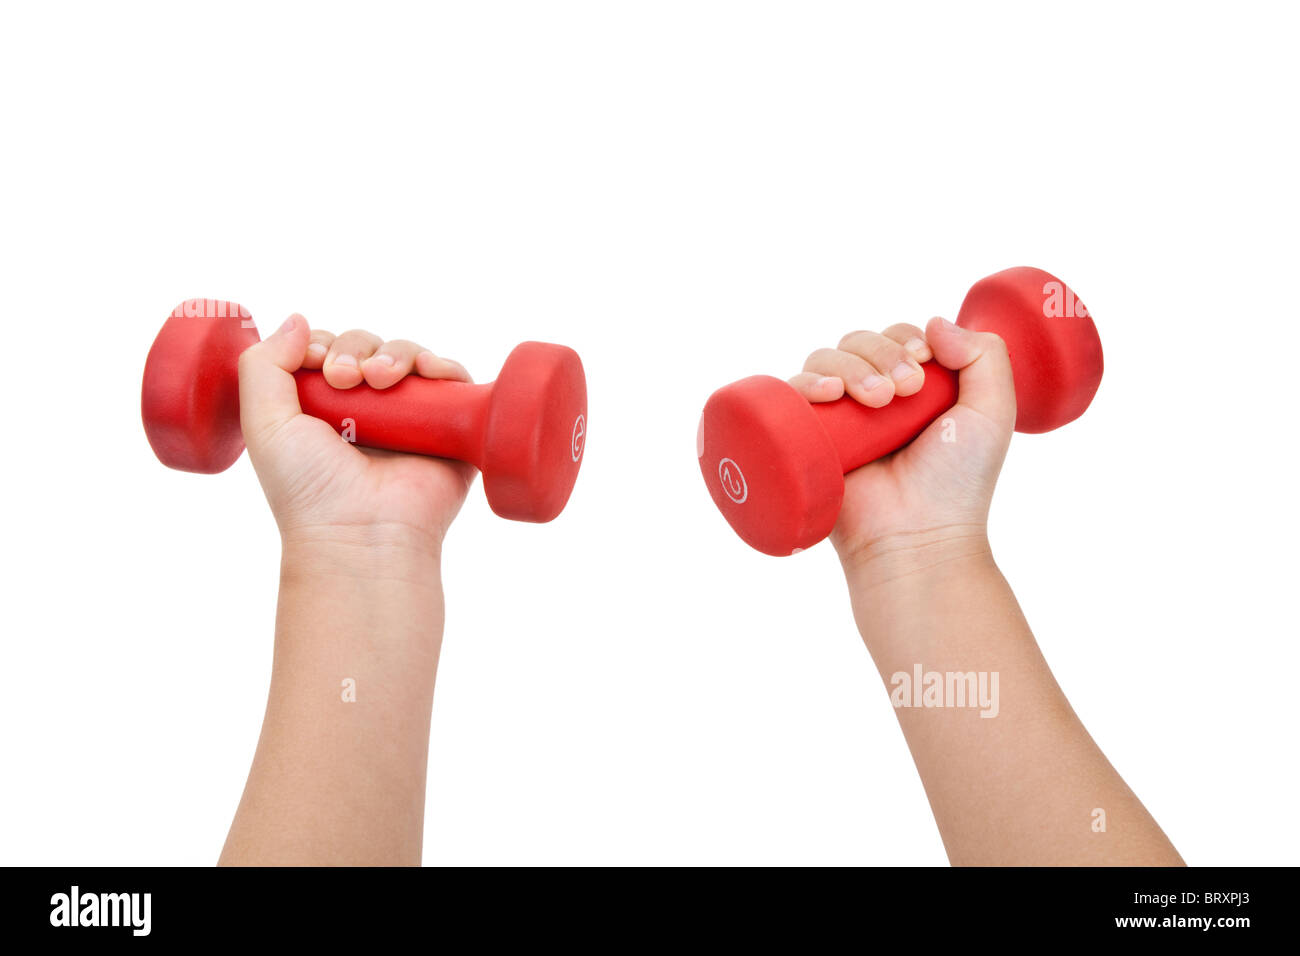 Hand holding Red Dumbbell close up shot - Stock Image